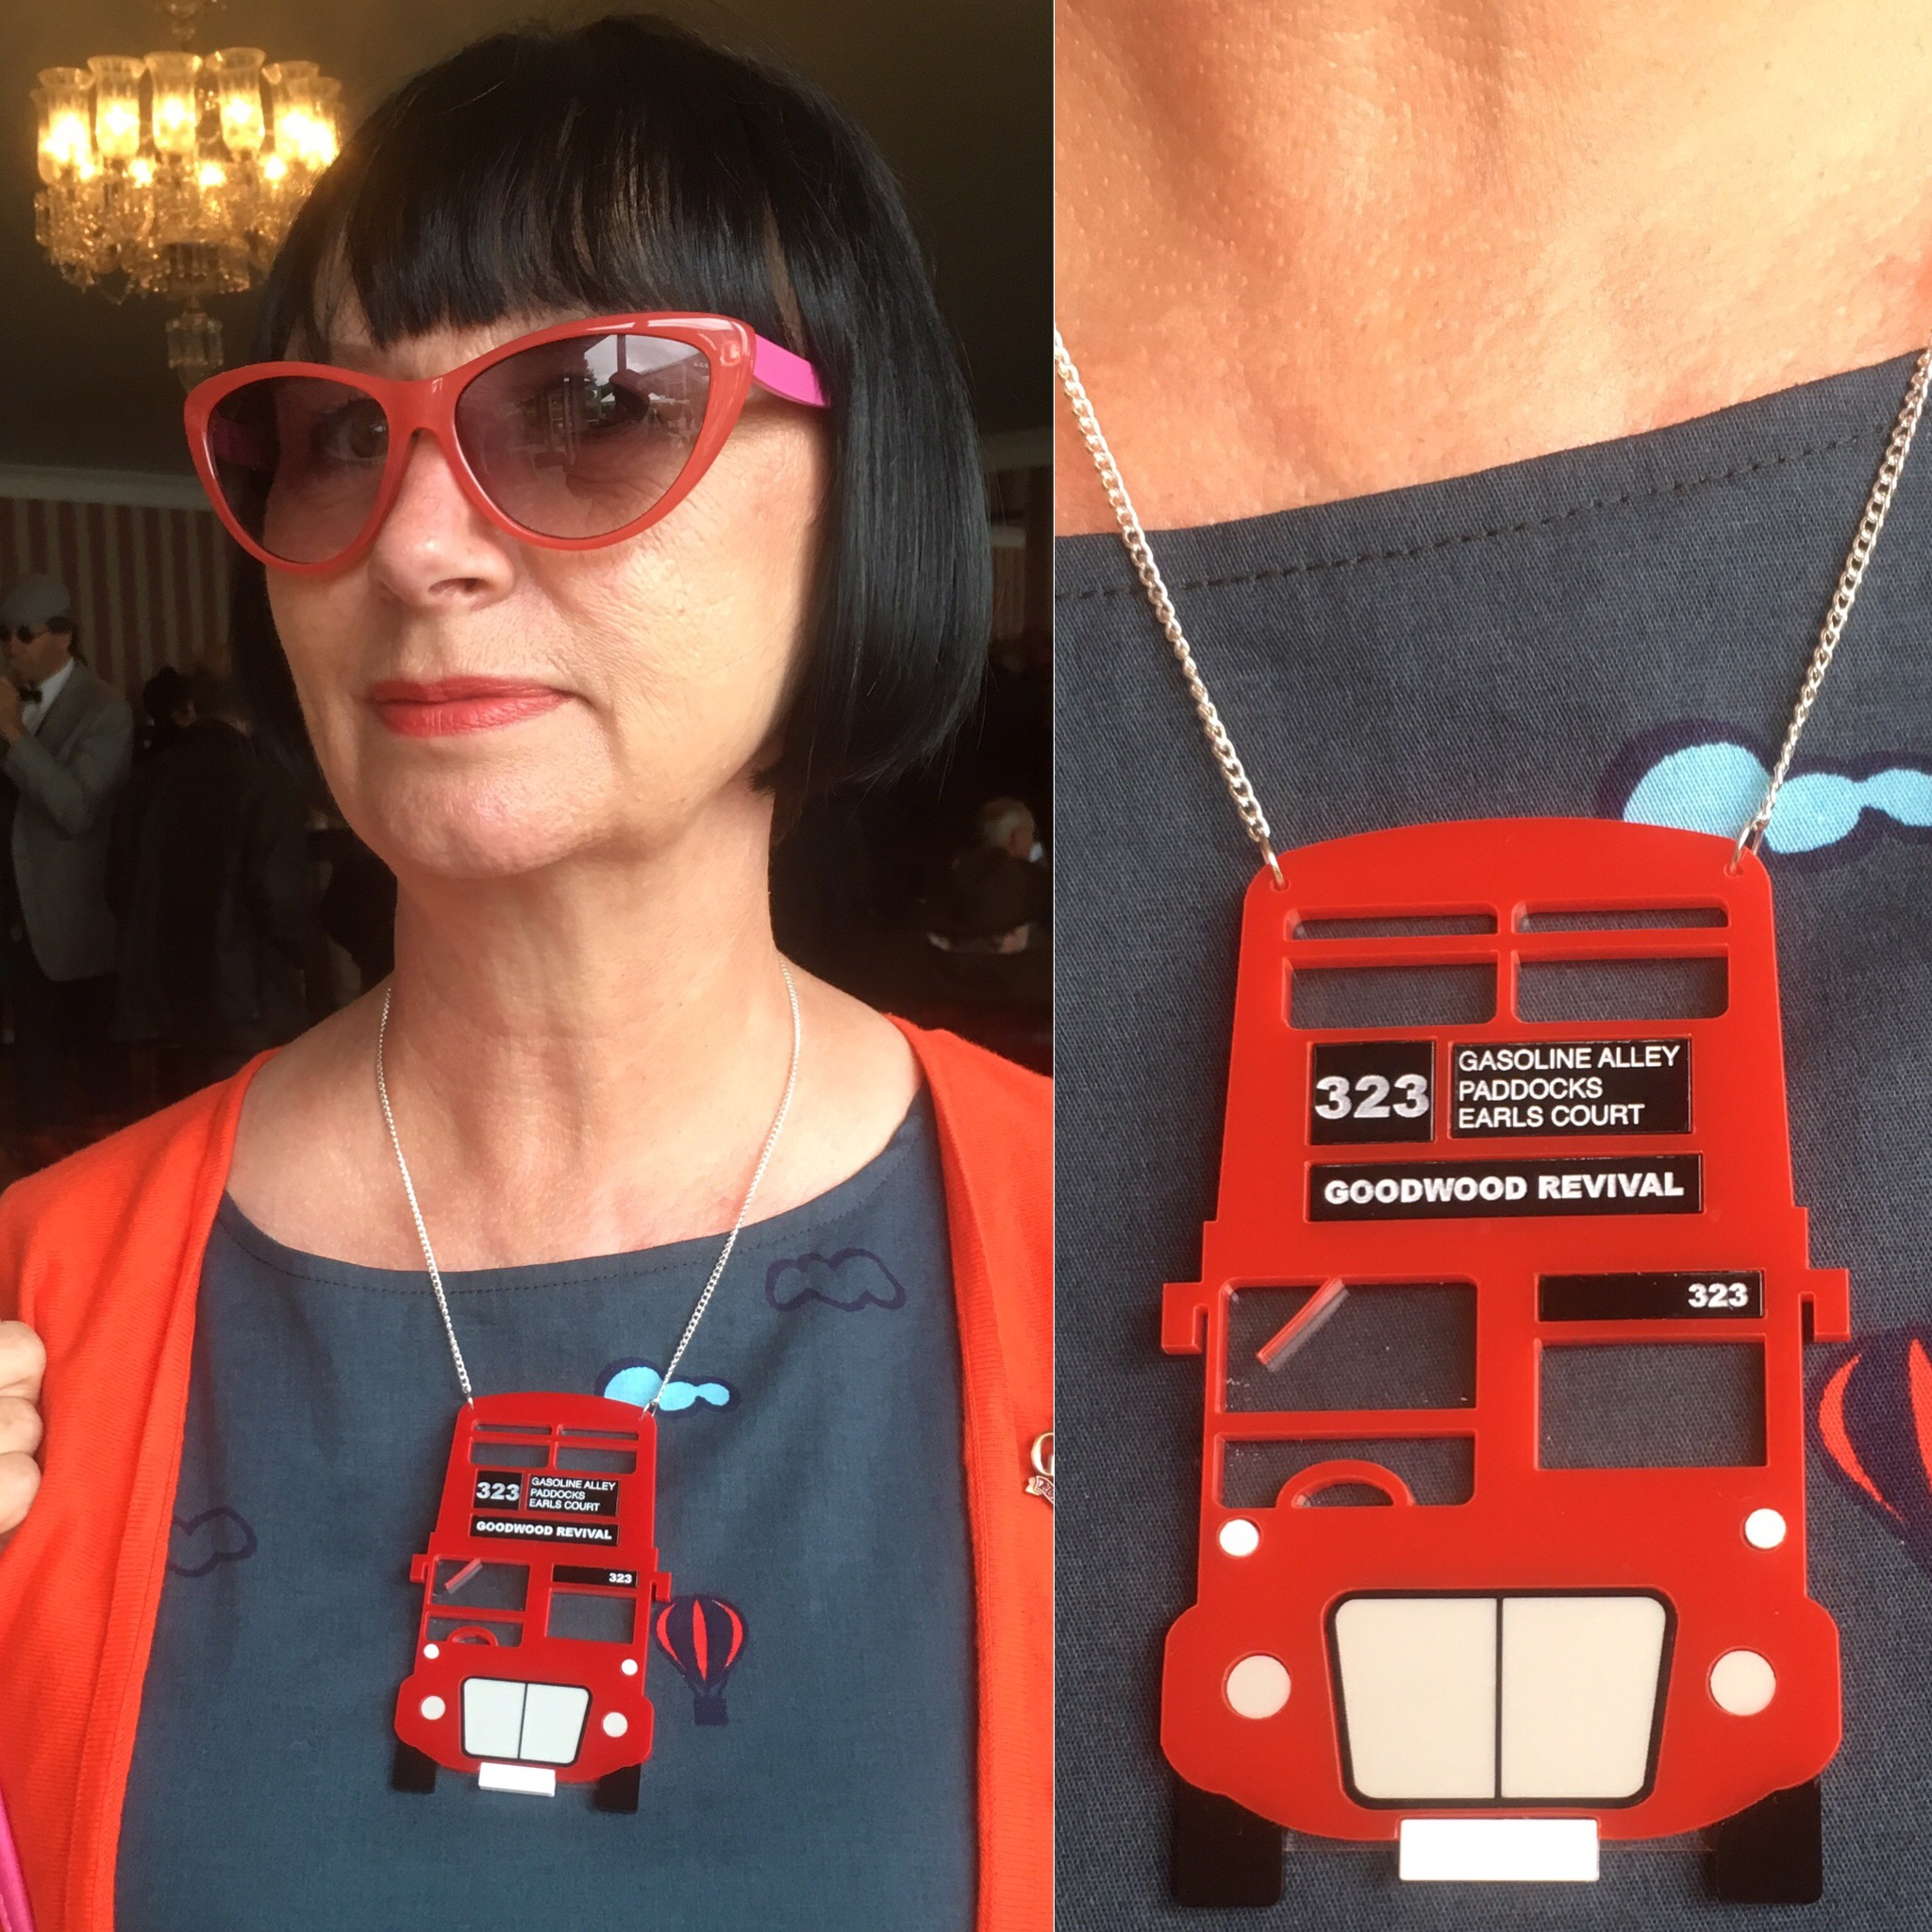 Custom Vintage Red London Bus designed to match a London dress. It was worn at Goodwood Revival... with unique bus number and bus stop names!